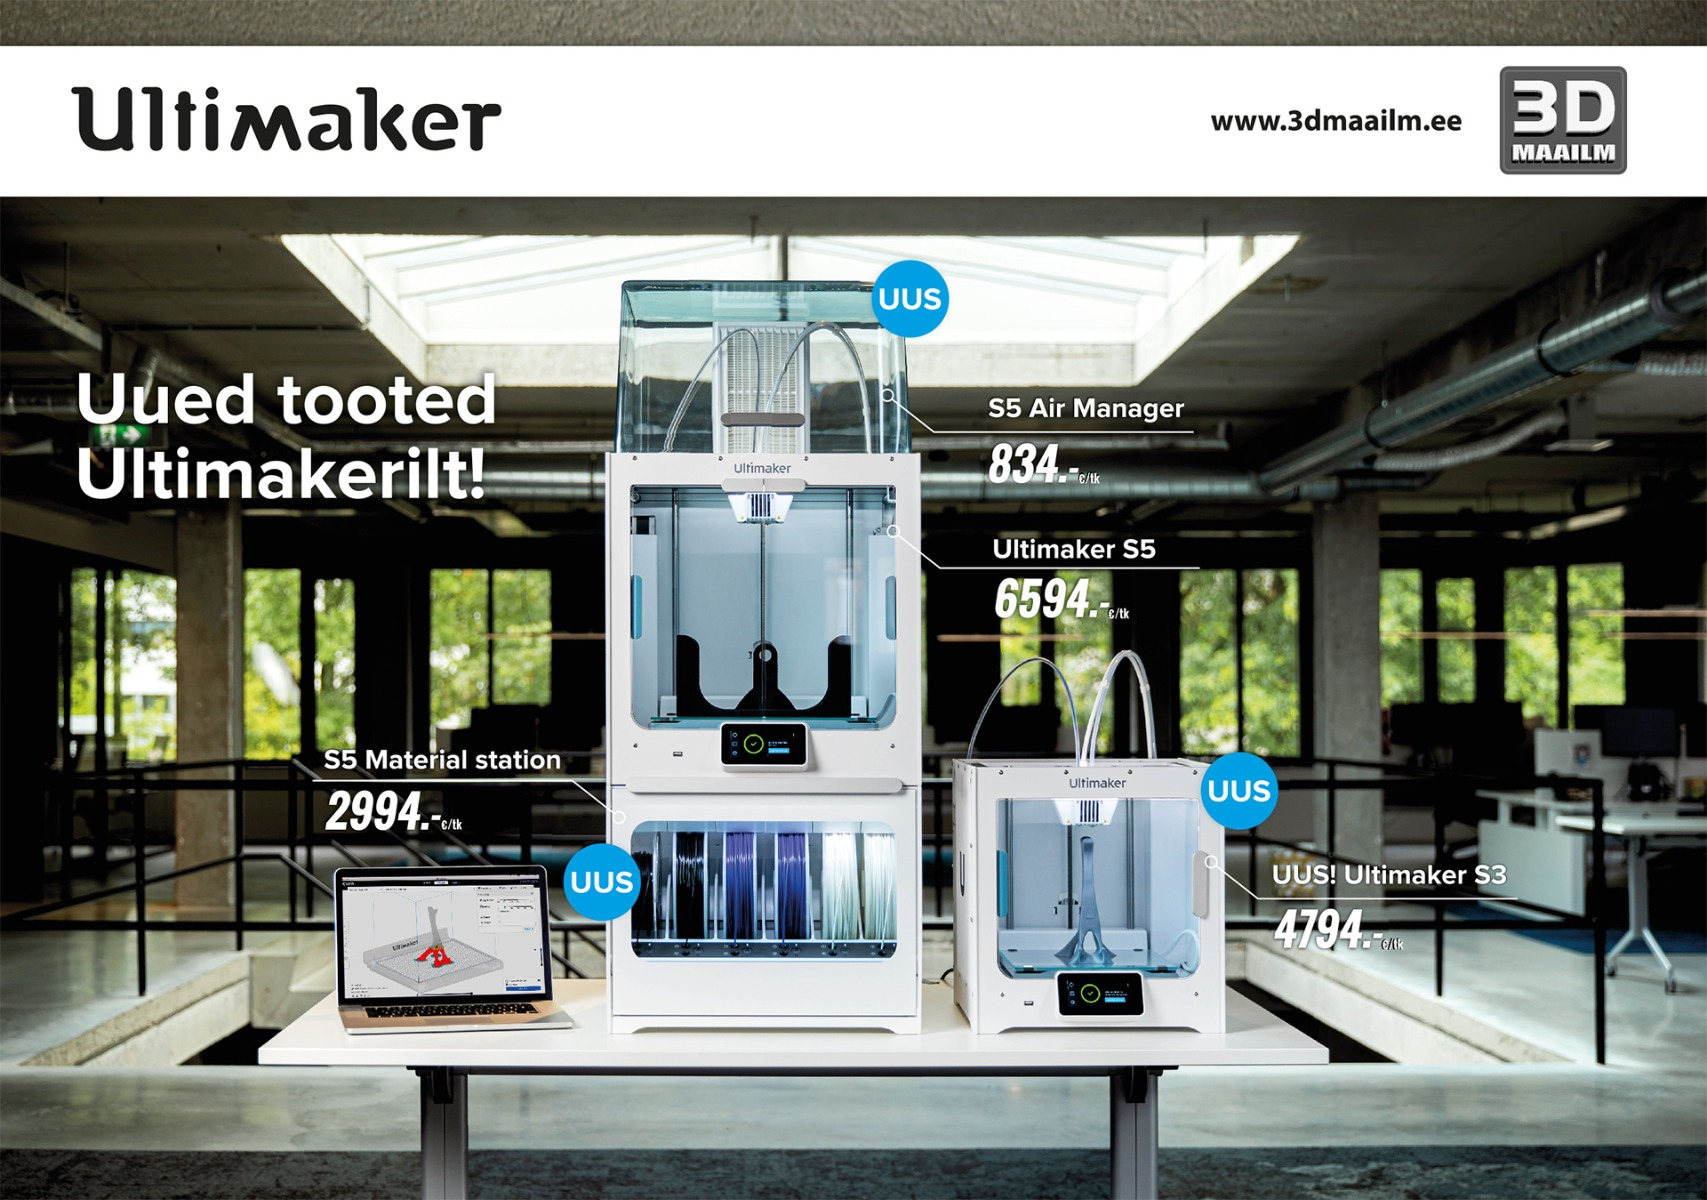 Ultimaker uued tooted